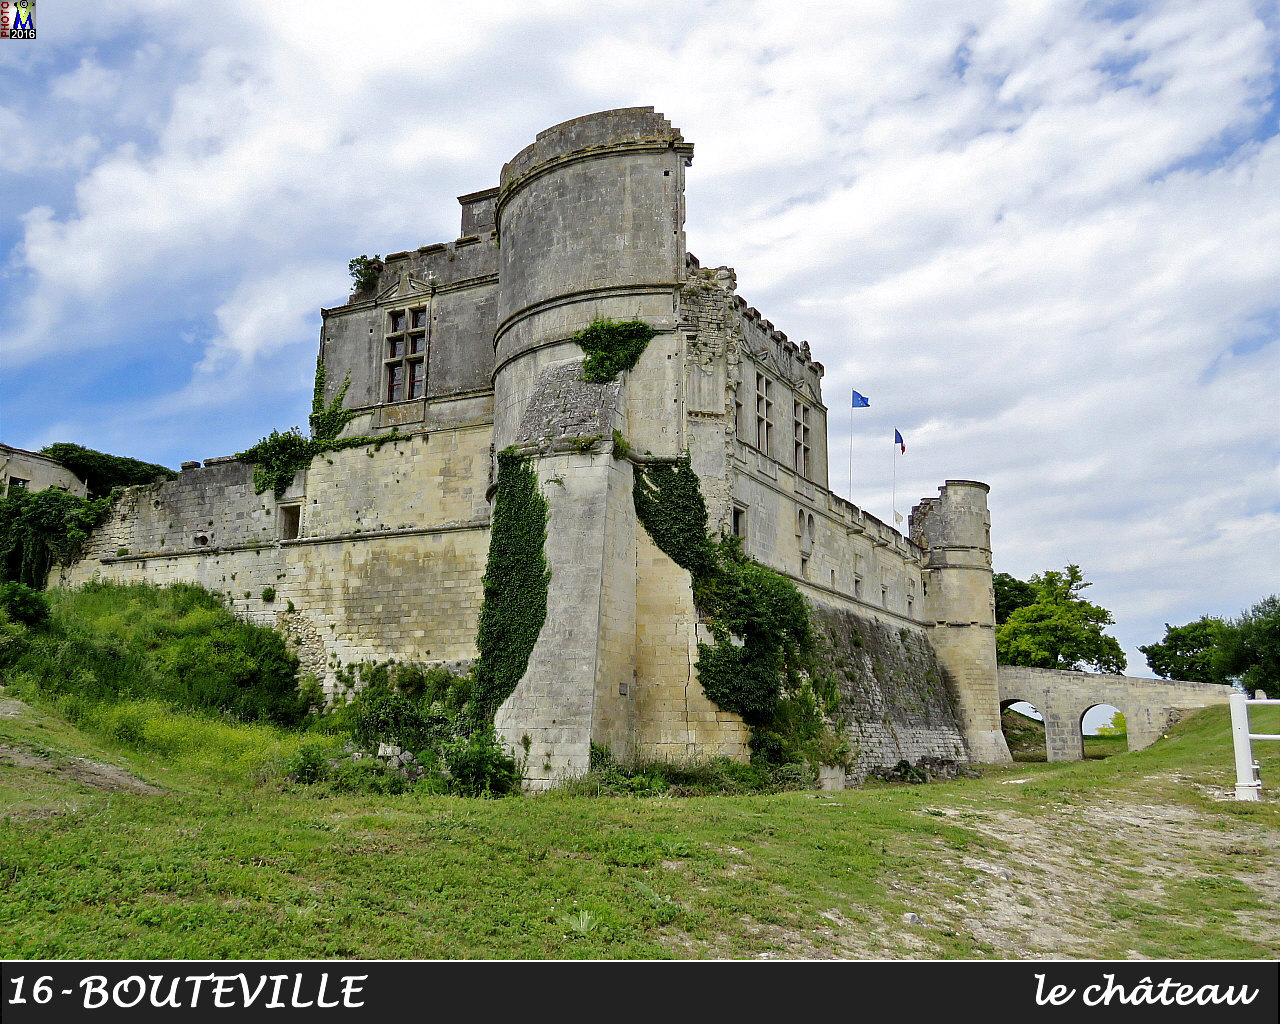 16BOUTEVILLE_chateau_1004.jpg